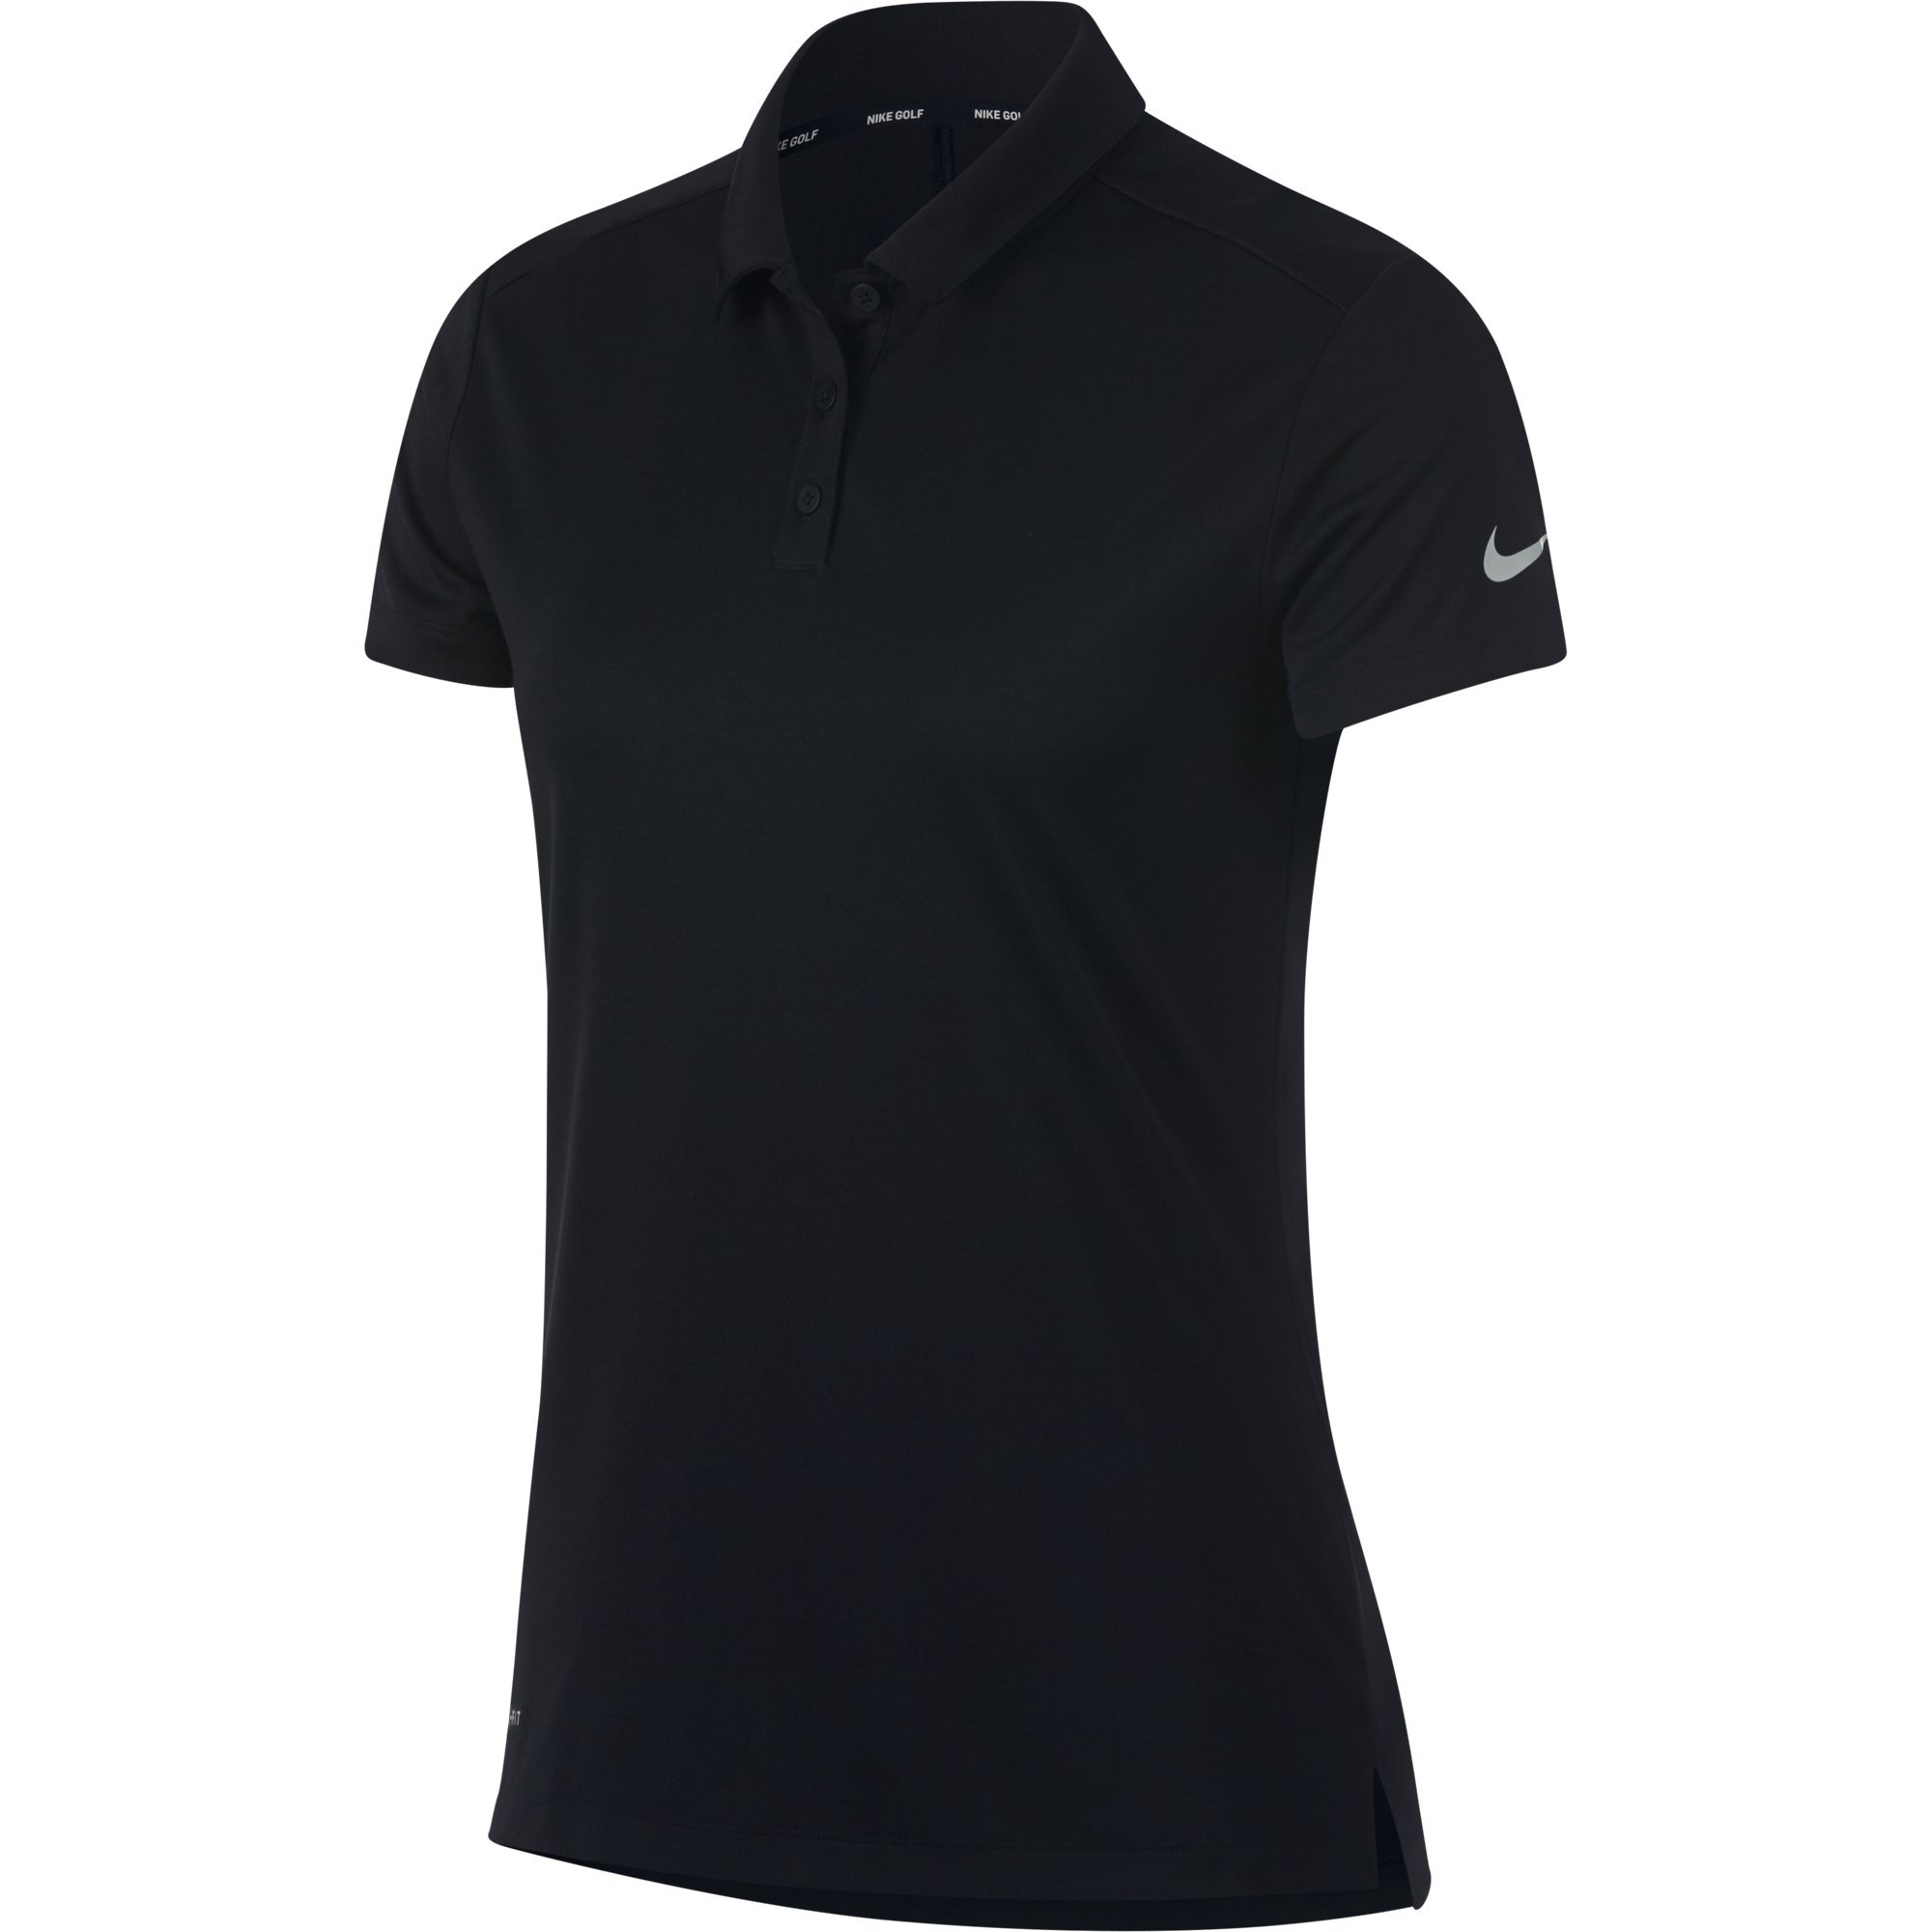 NIKE Women's Dry Short Sleeve Golf Polo, Black/Flat Silver, Medium by Nike